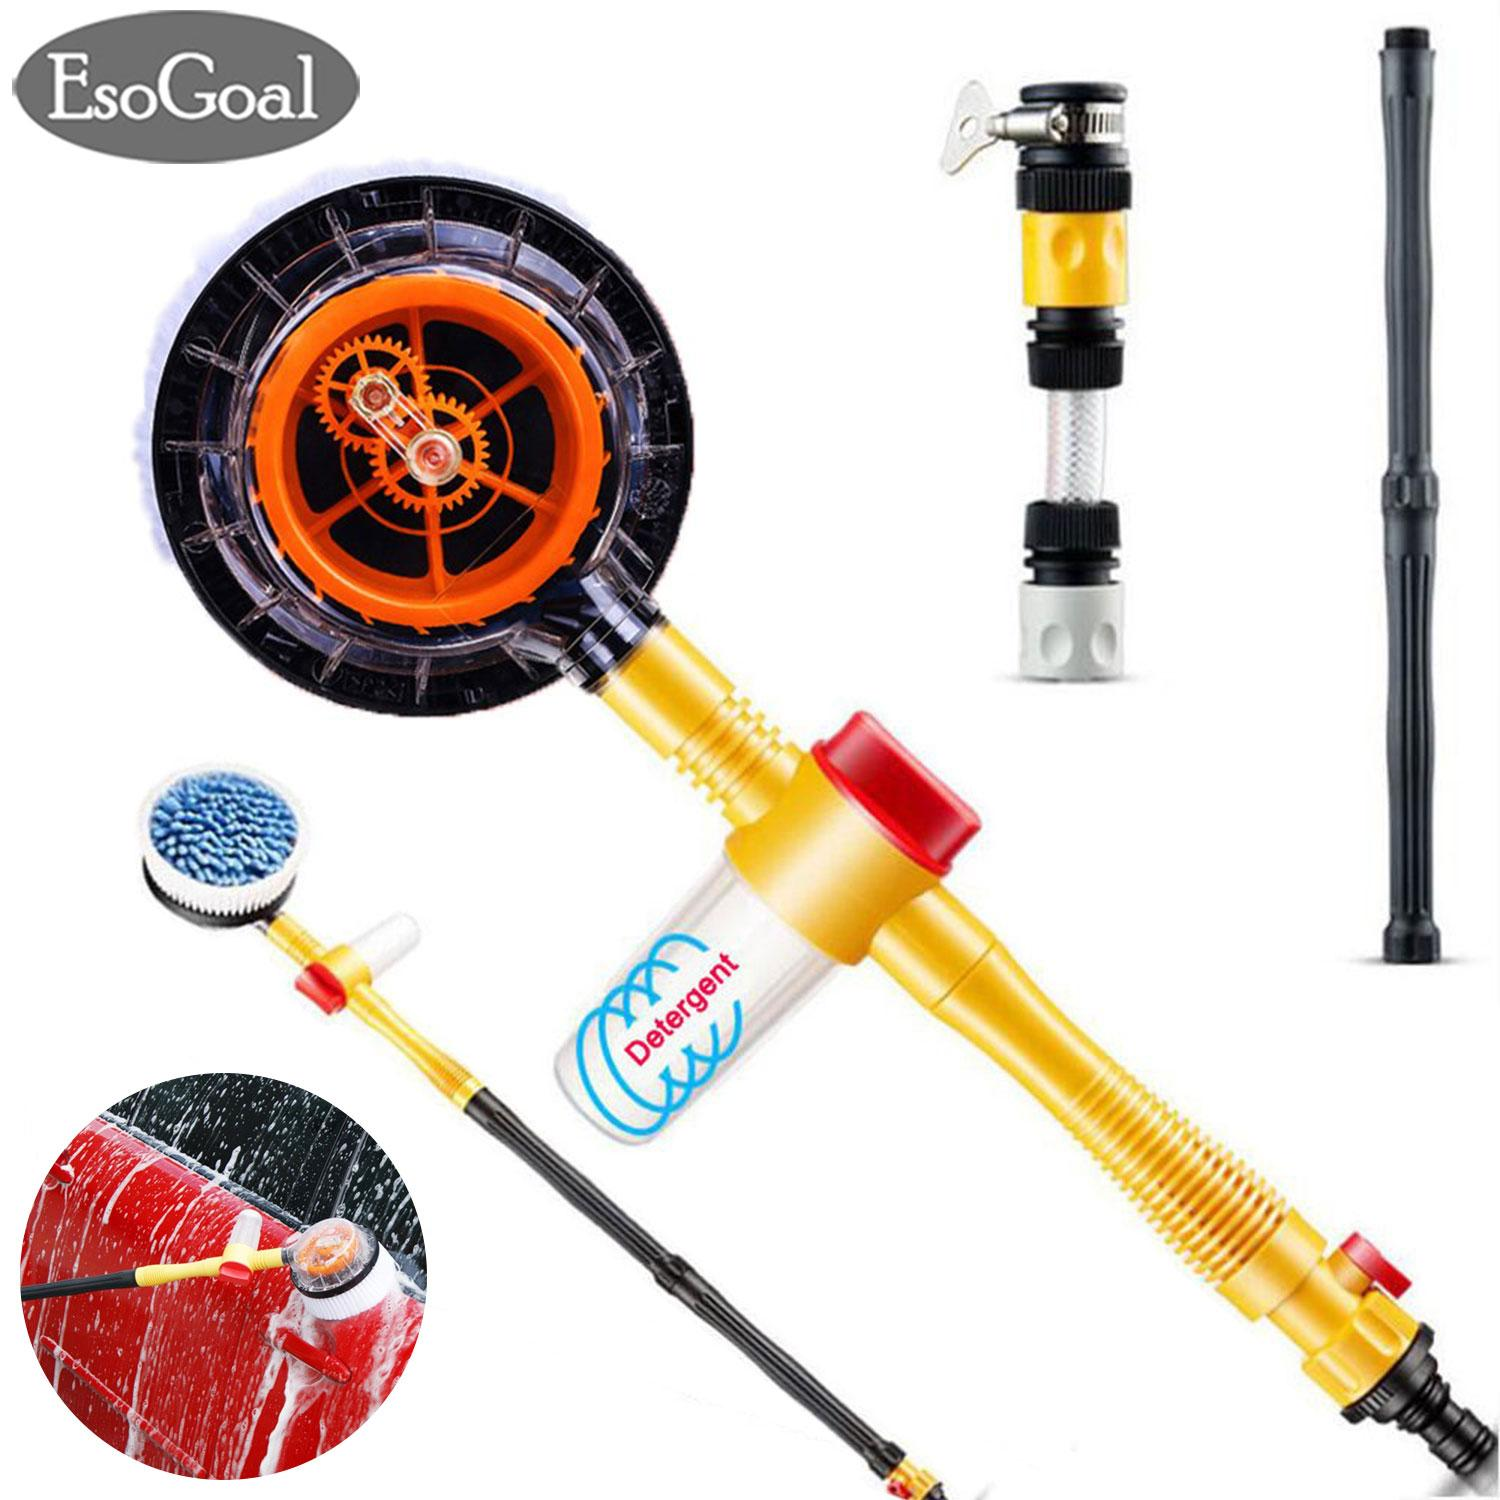 EsoGoal Sikat Mobil Self Rotating Car Bubble Wash Microfiber Brush Sponge Water Fast Cleaner High Pressure Car Wash Brush Car Cleaning Tool Automatic Rotate Switch Spray Water Flow Foam Garden Sprinkler